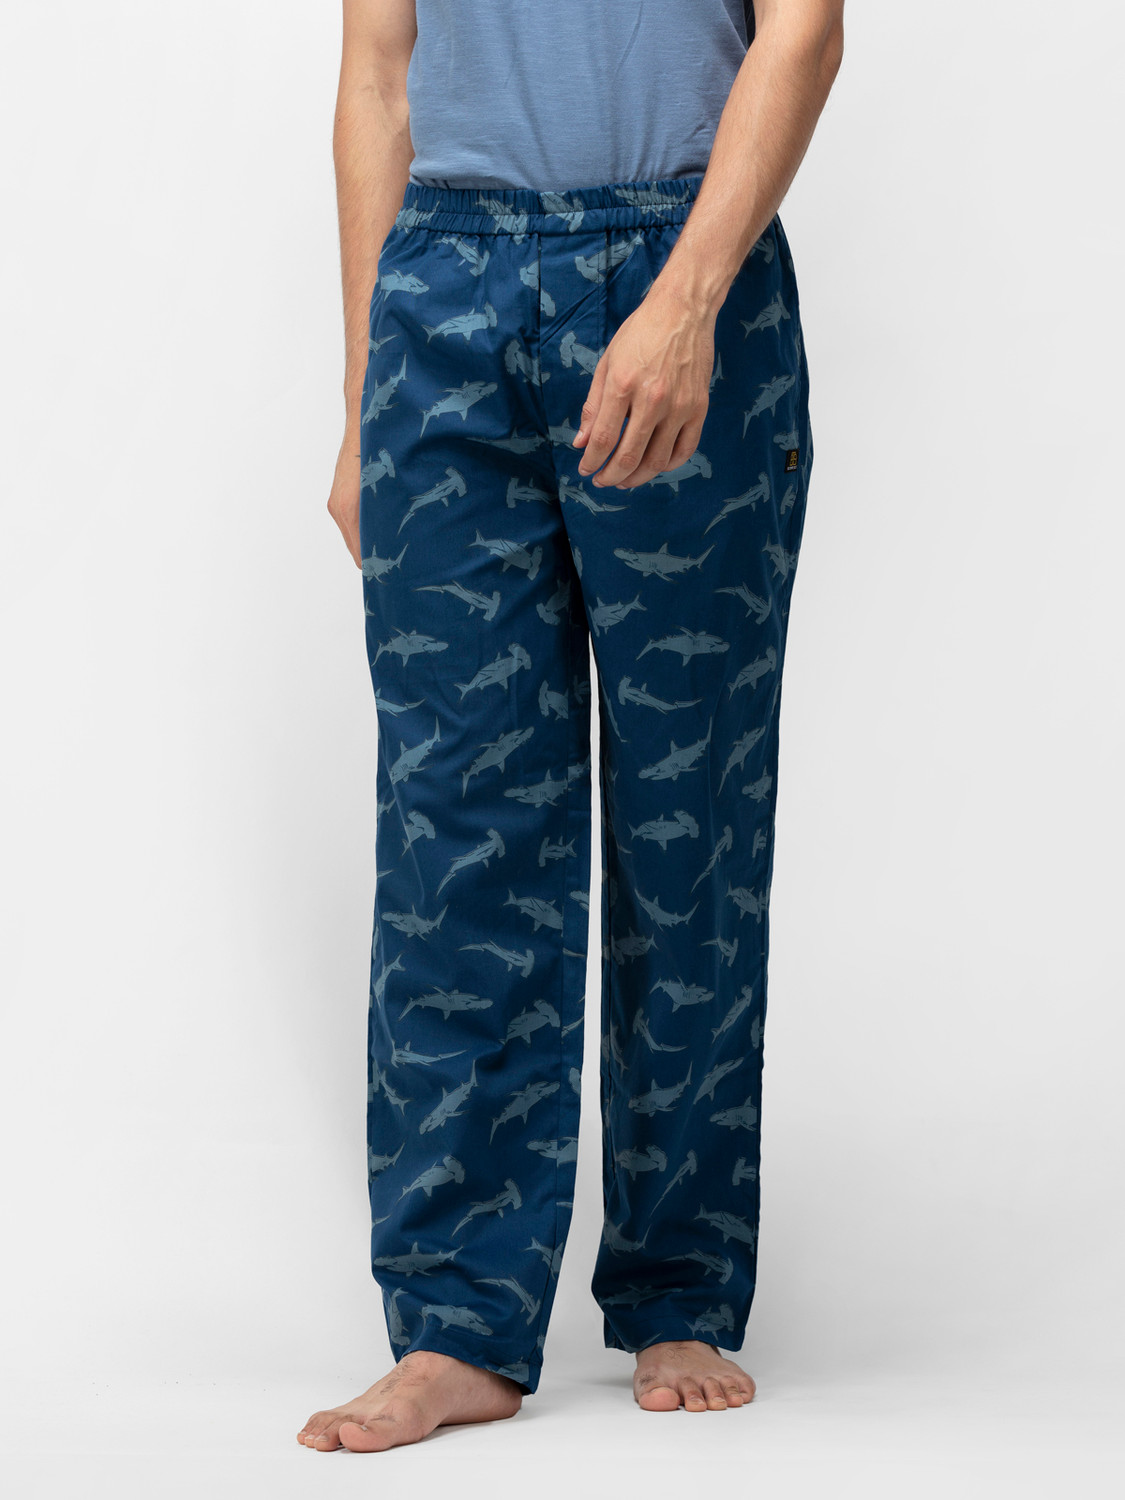 Fintastic Men's Cotton Pajamas